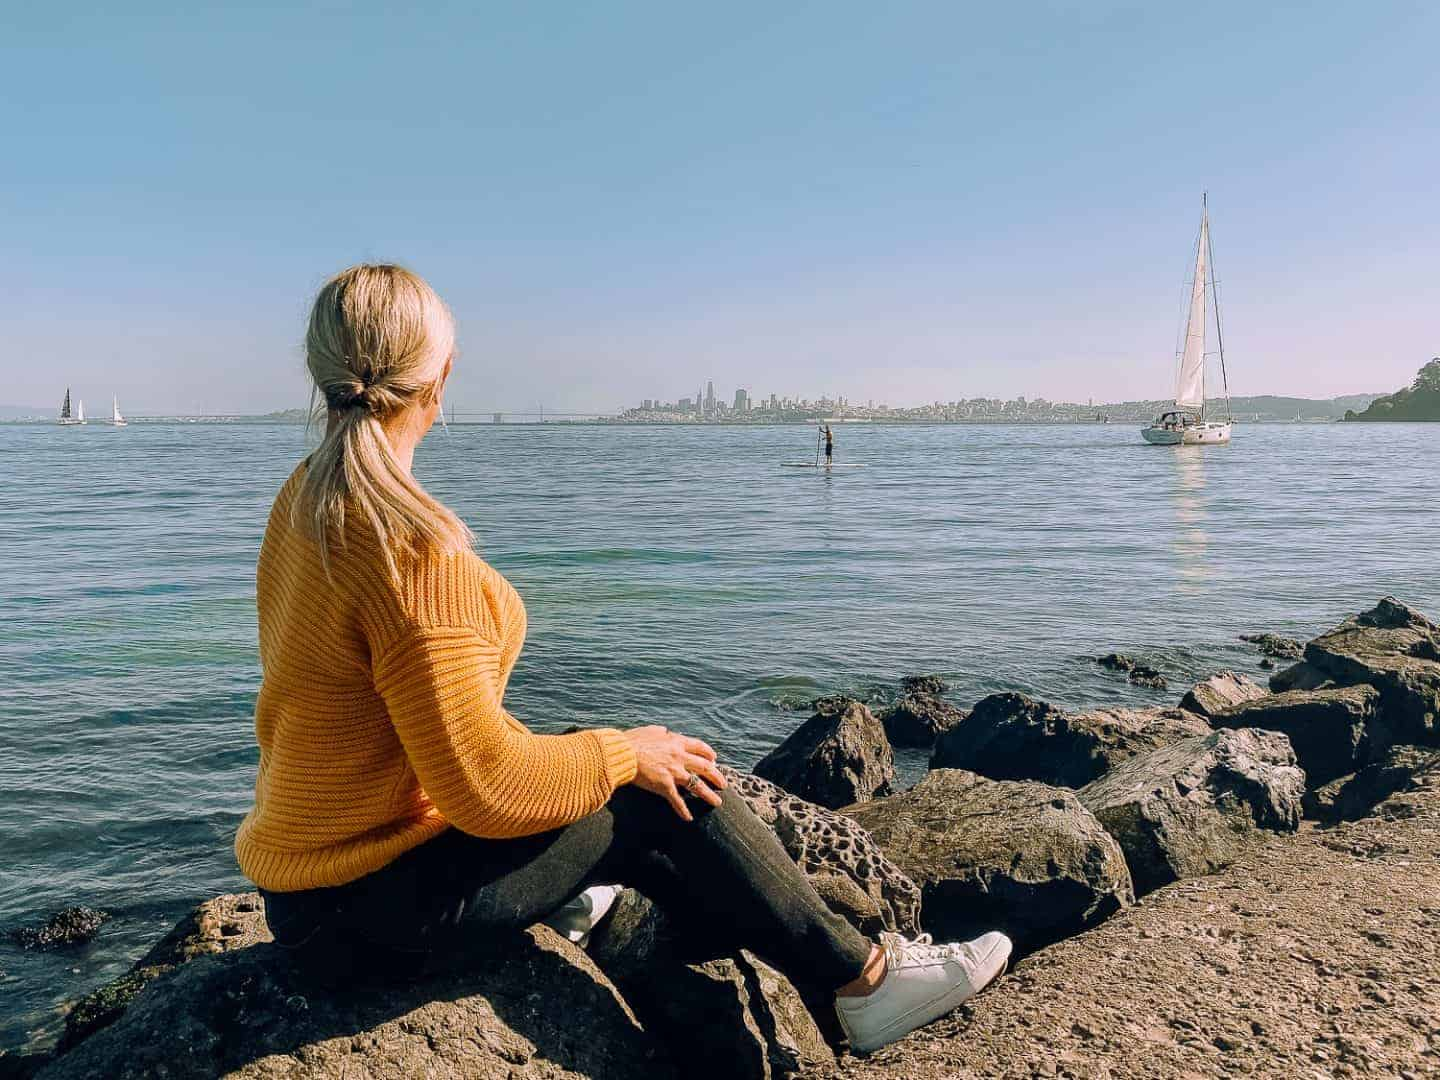 girl in yellow sweater staring out at san fran skyline across the bay